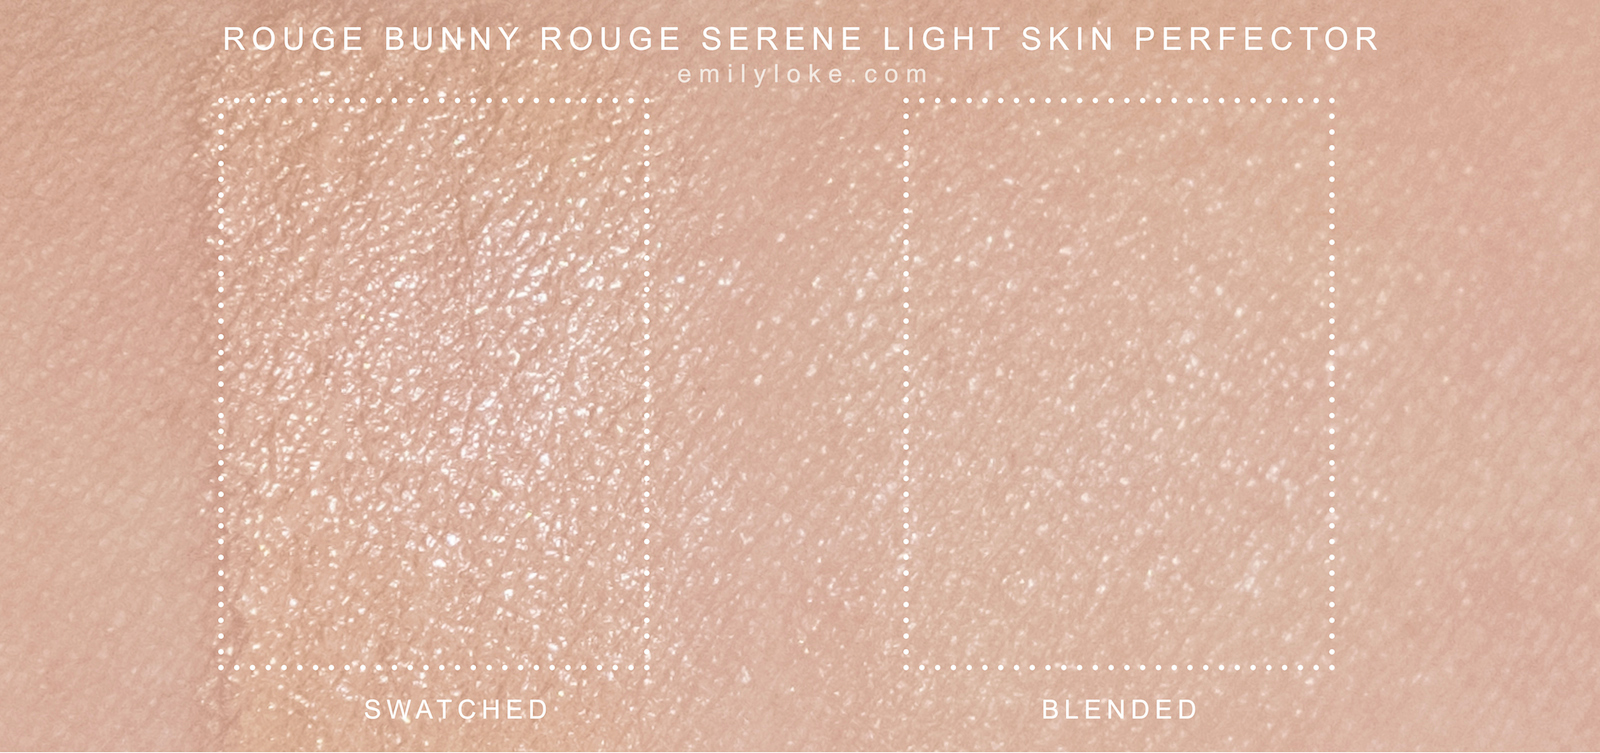 Rouge Bunny Rouge Serene Light Skin Perfector